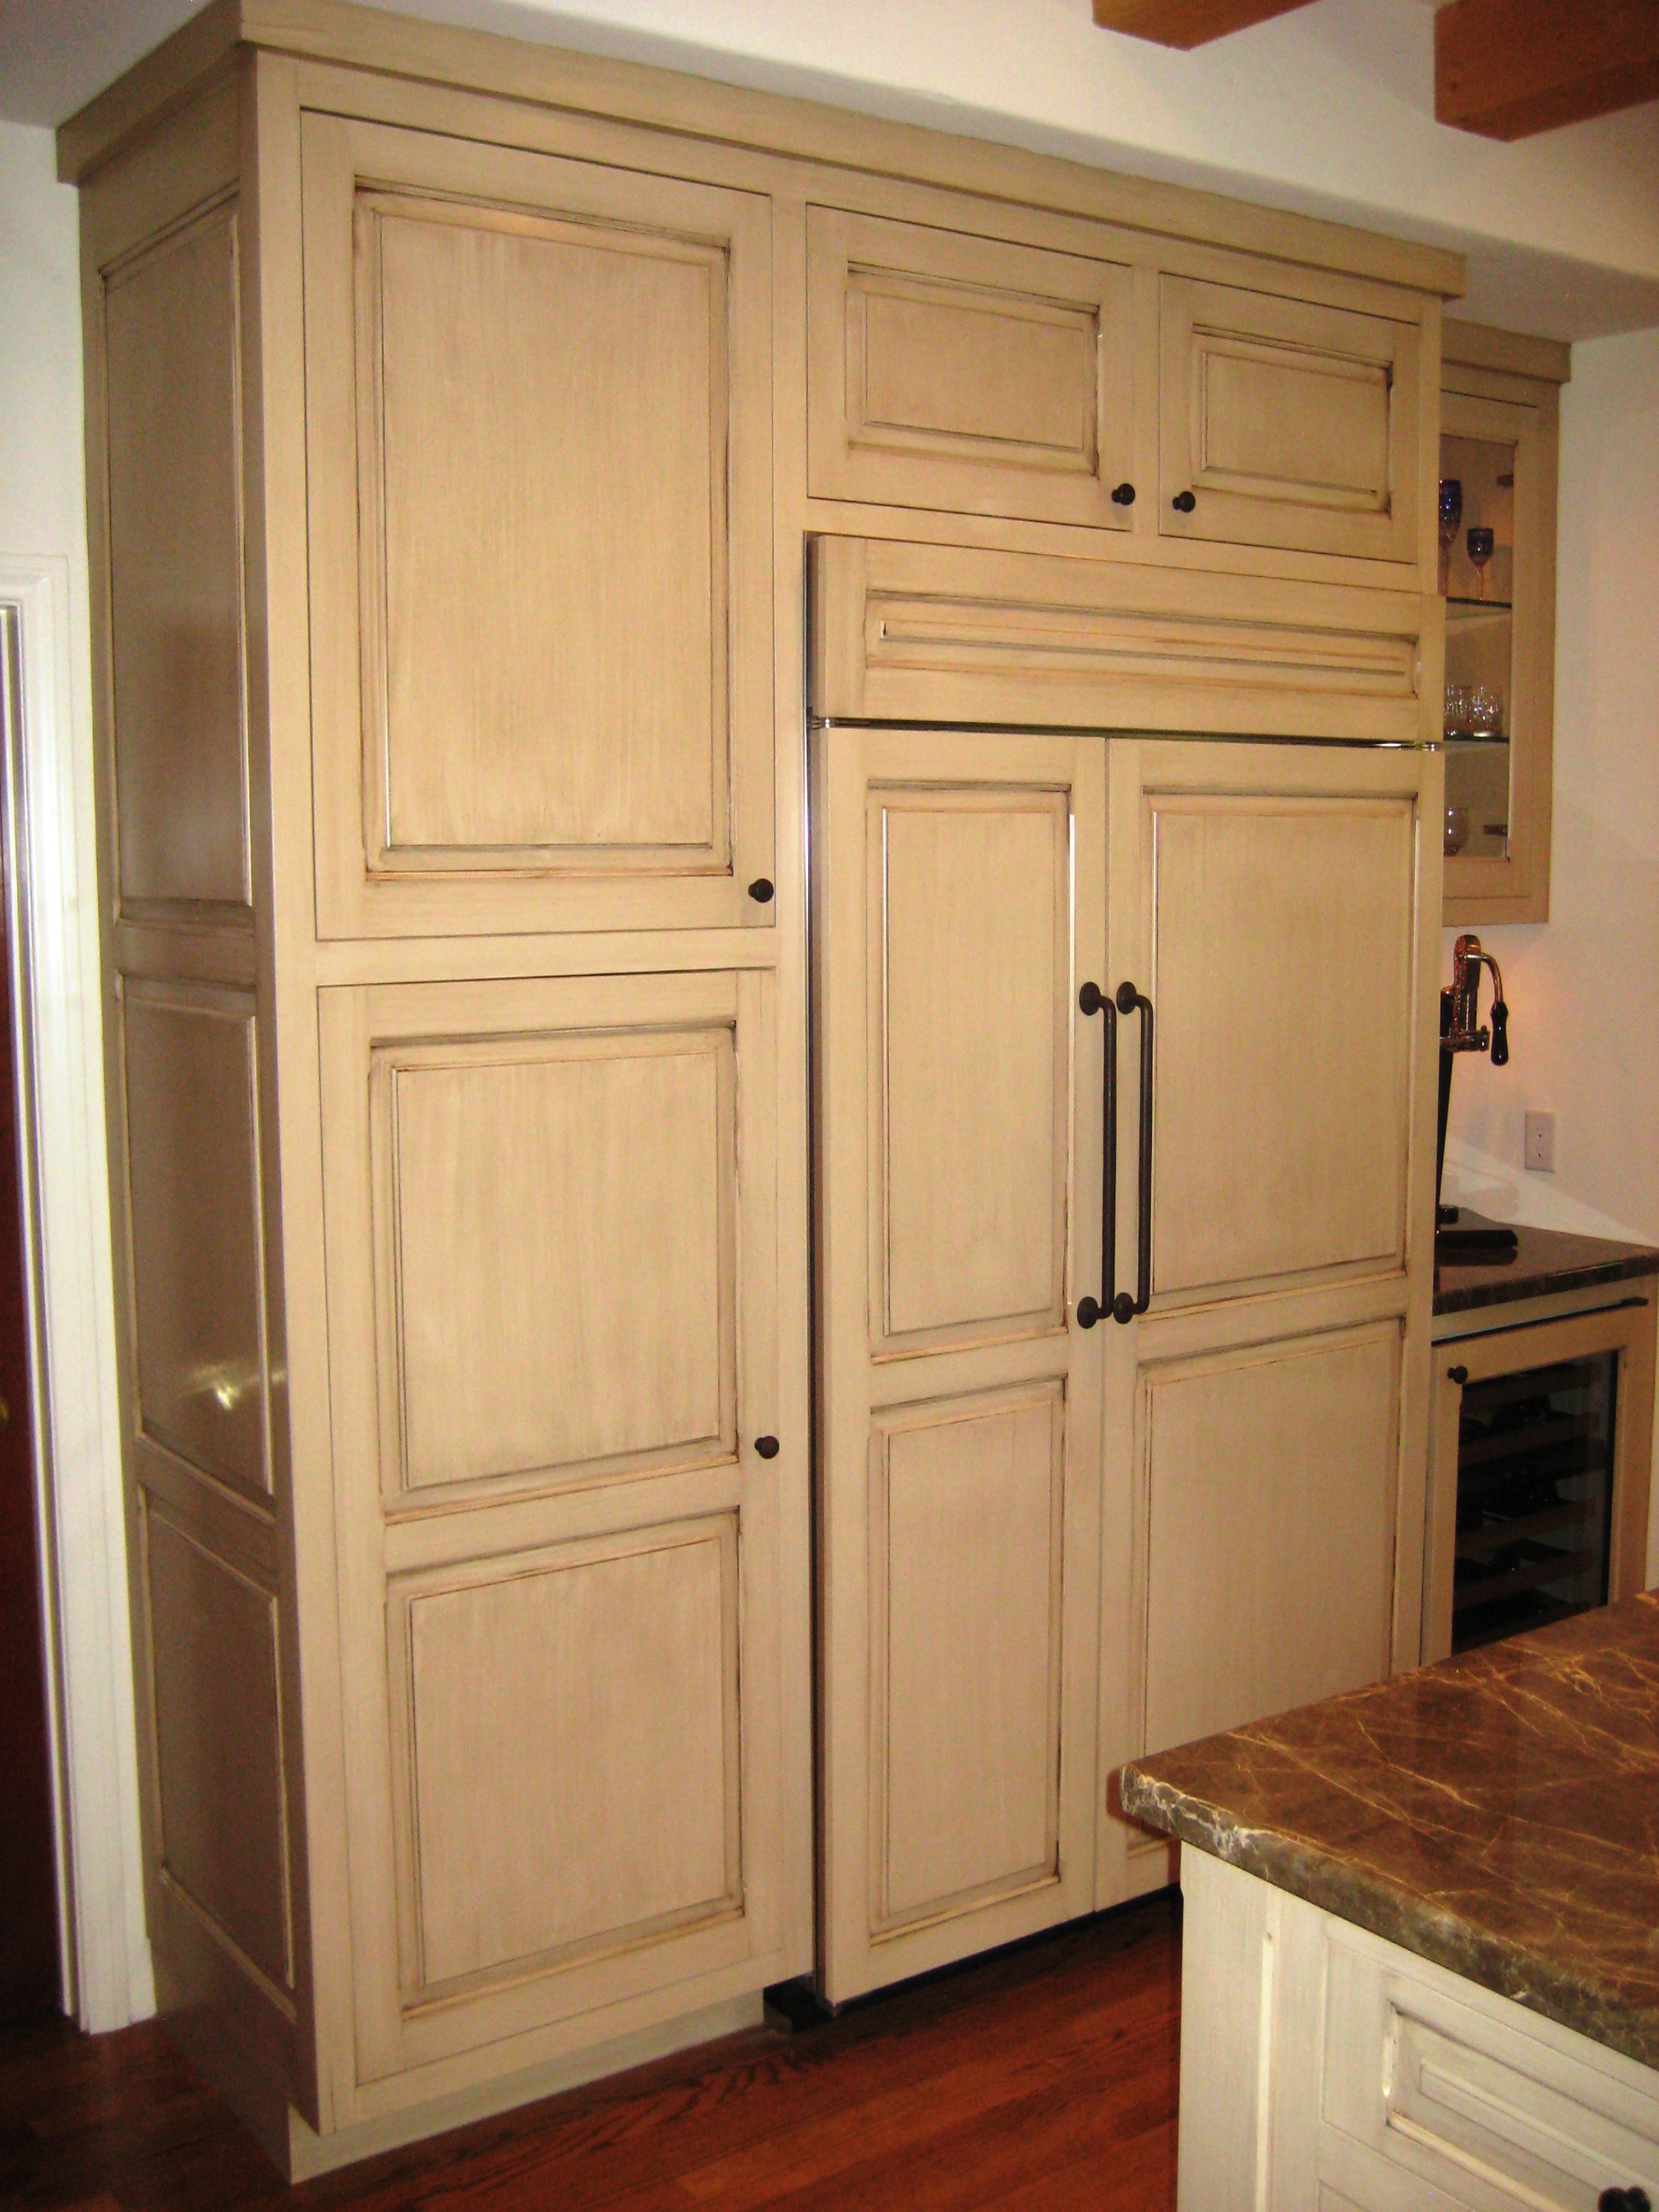 Antique Kitchen 020 Custom Cabinets By Mahnken Cabinets